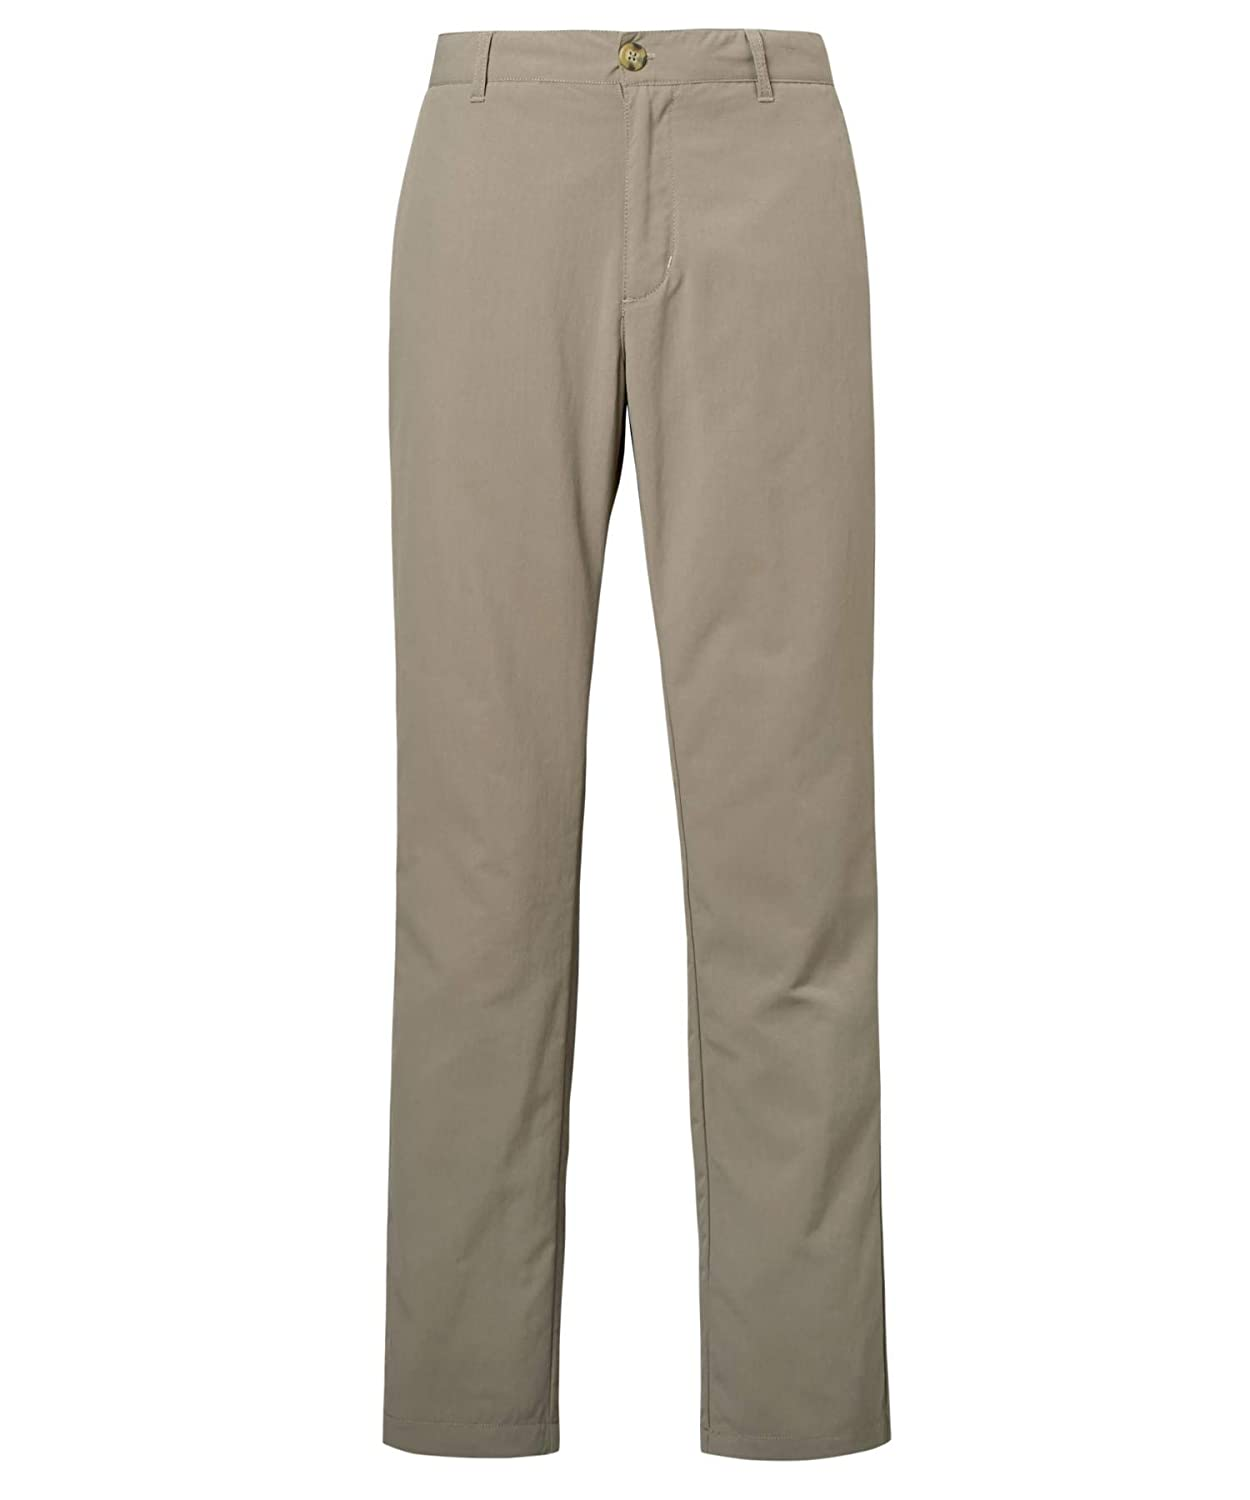 Craghoppers NosiLife Albany Hose Men - Reisehose